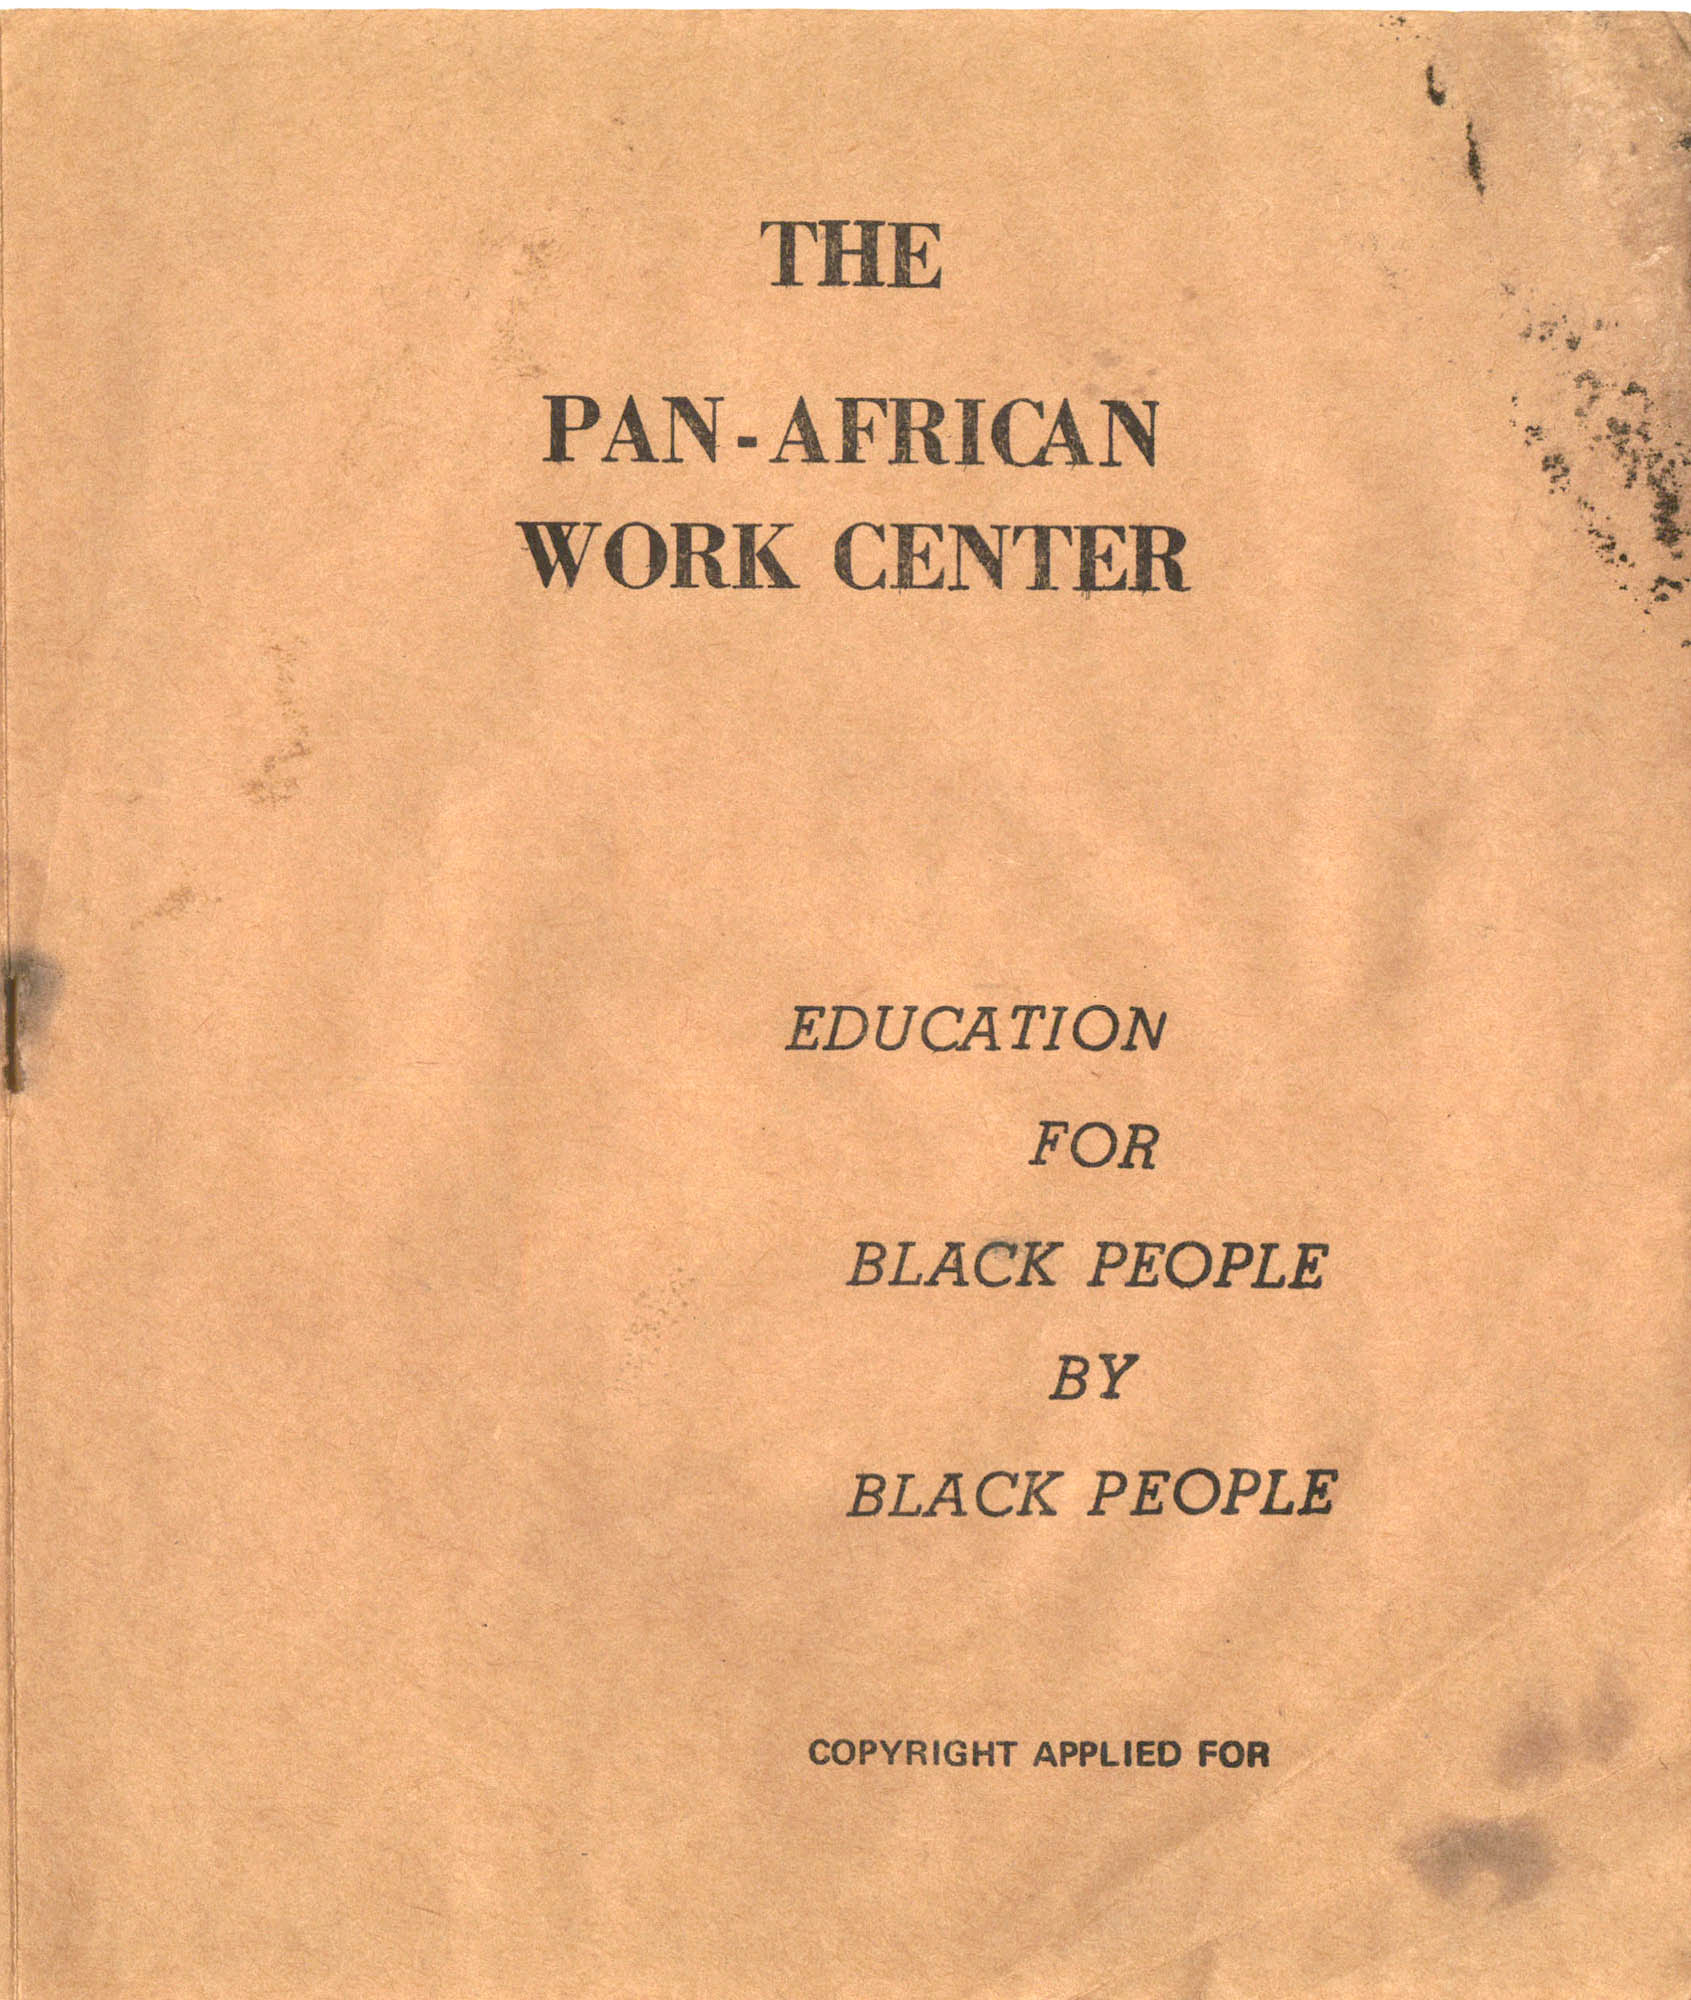 The Pan-African Work Center